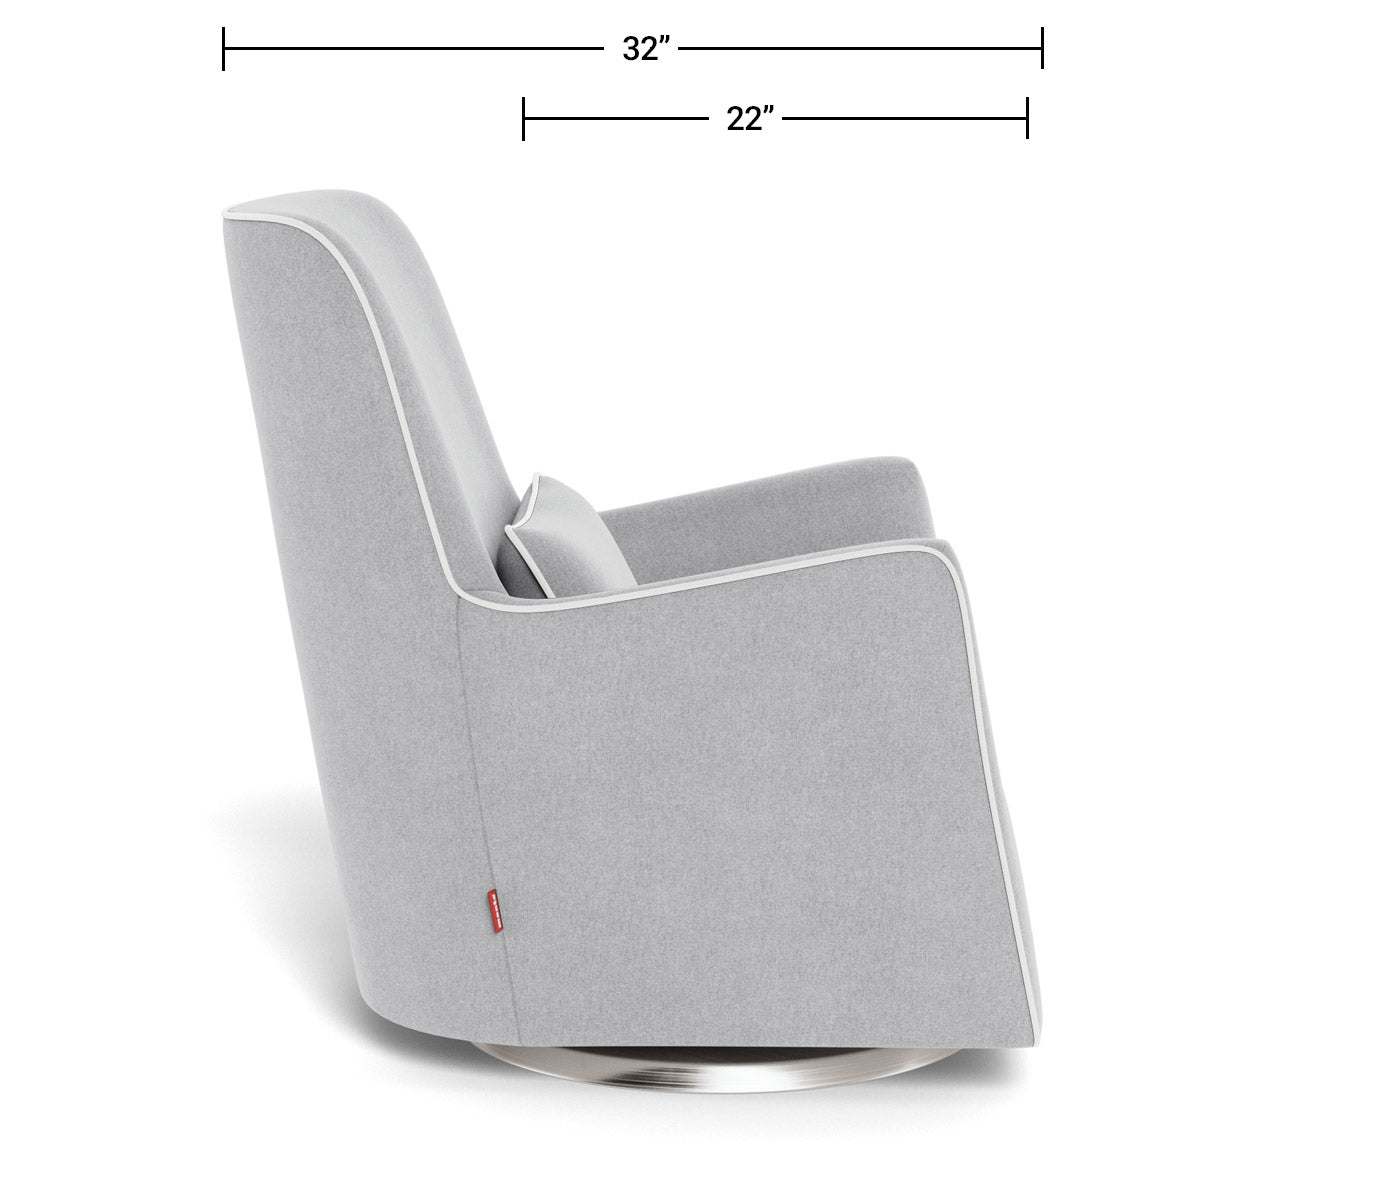 Modern Nursery Glider Chair - Grazia Glider Chair Dimensions Side View